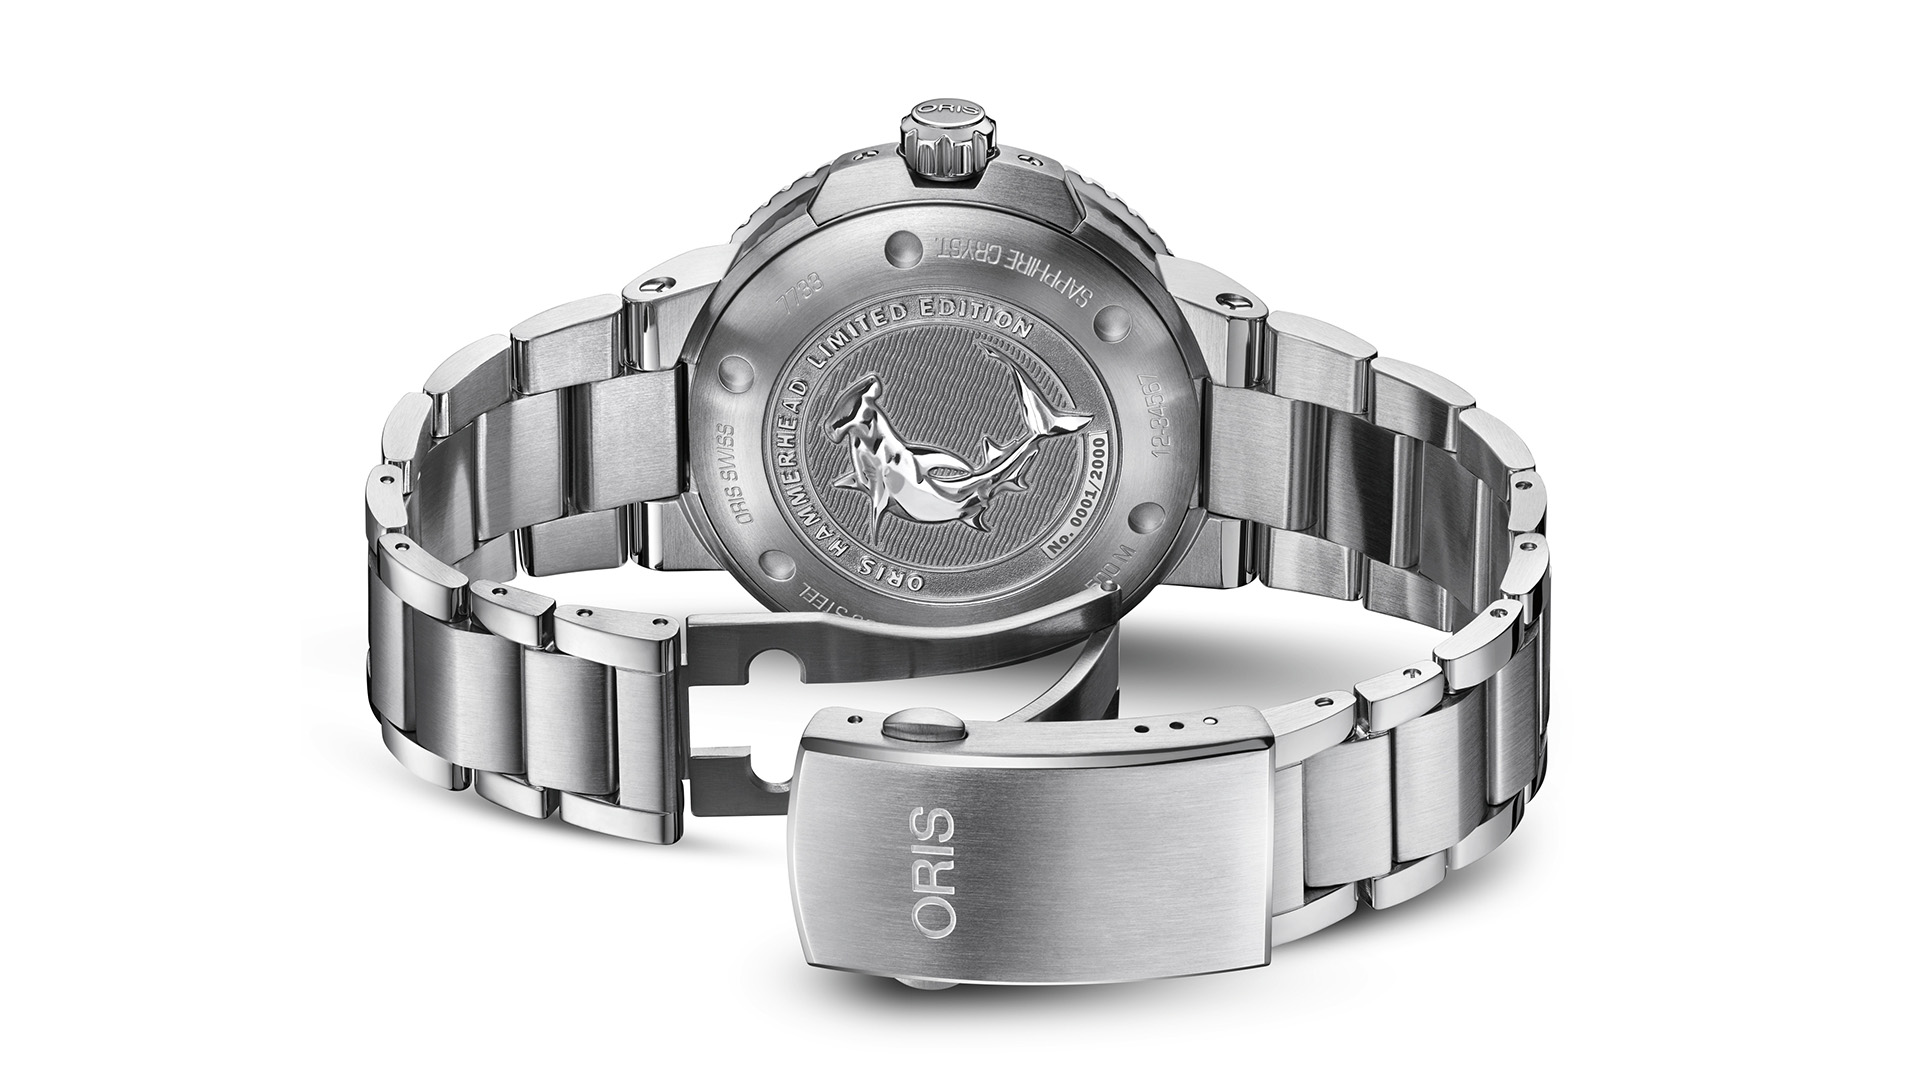 01 747 7715 7754-Set - Oris Force Recon GMT Edition I